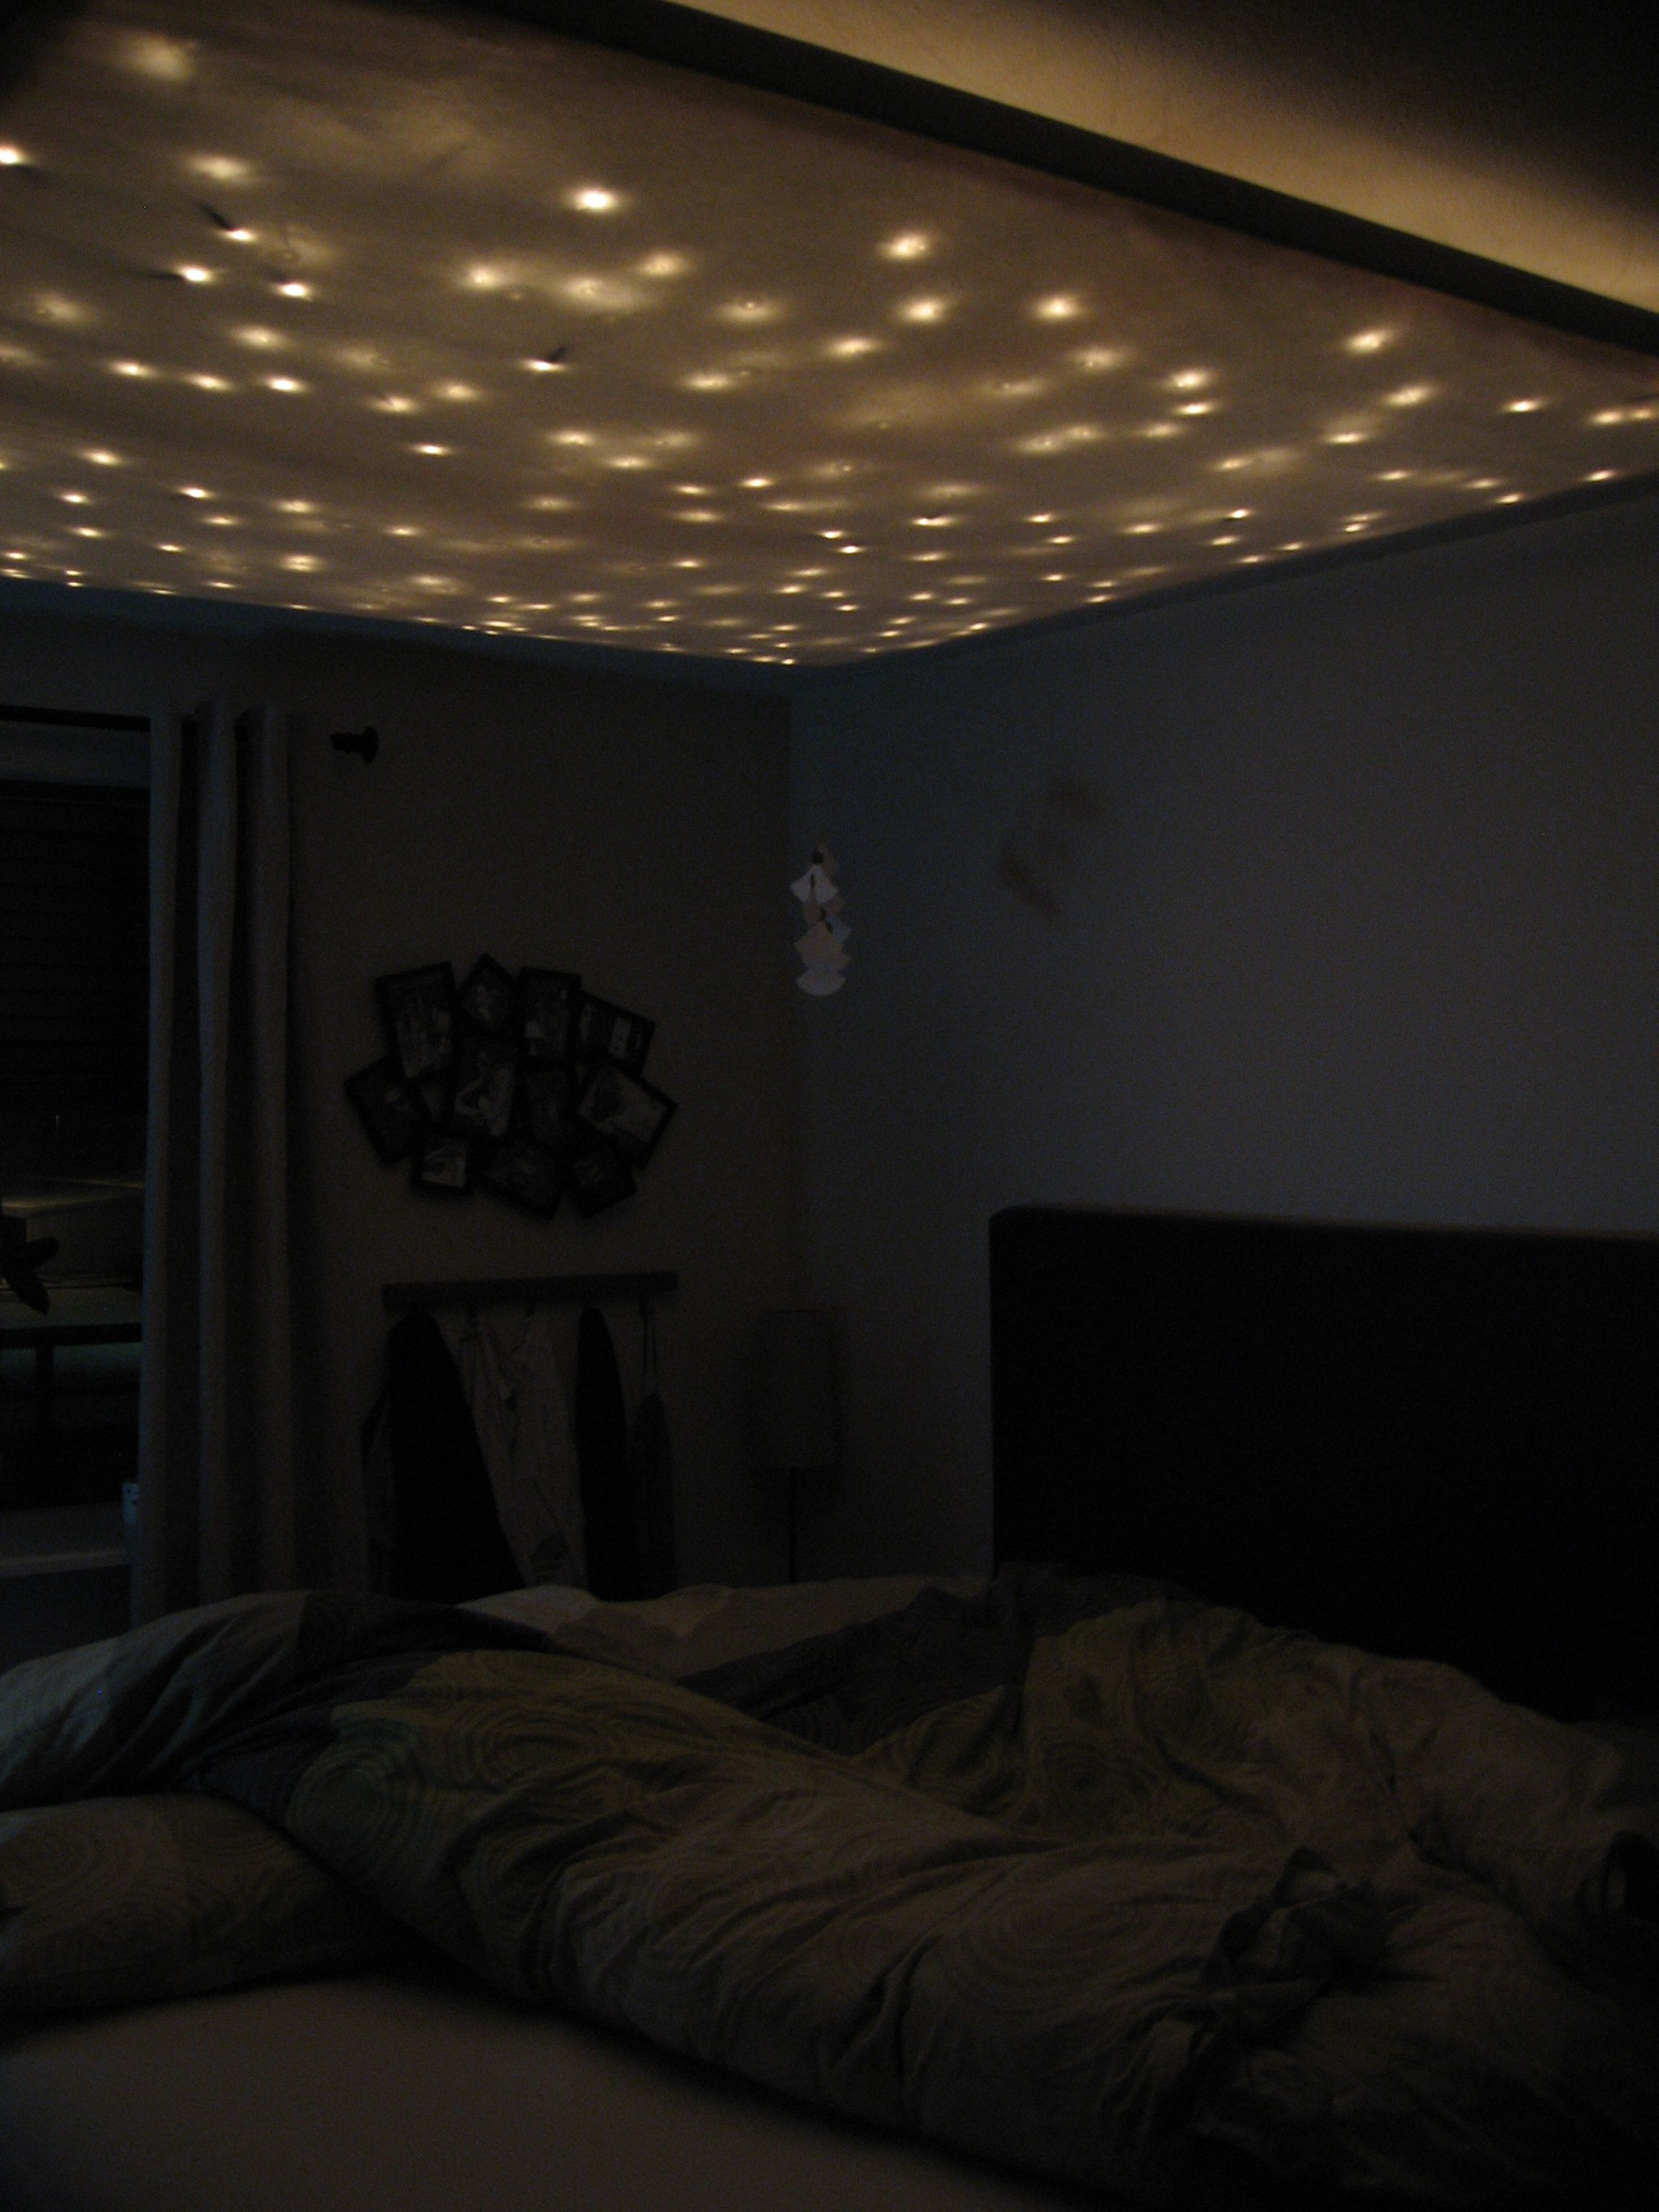 Bedroom christmas lights on ceiling - Great Idea For Kids Room Xmas Lights And Fabric